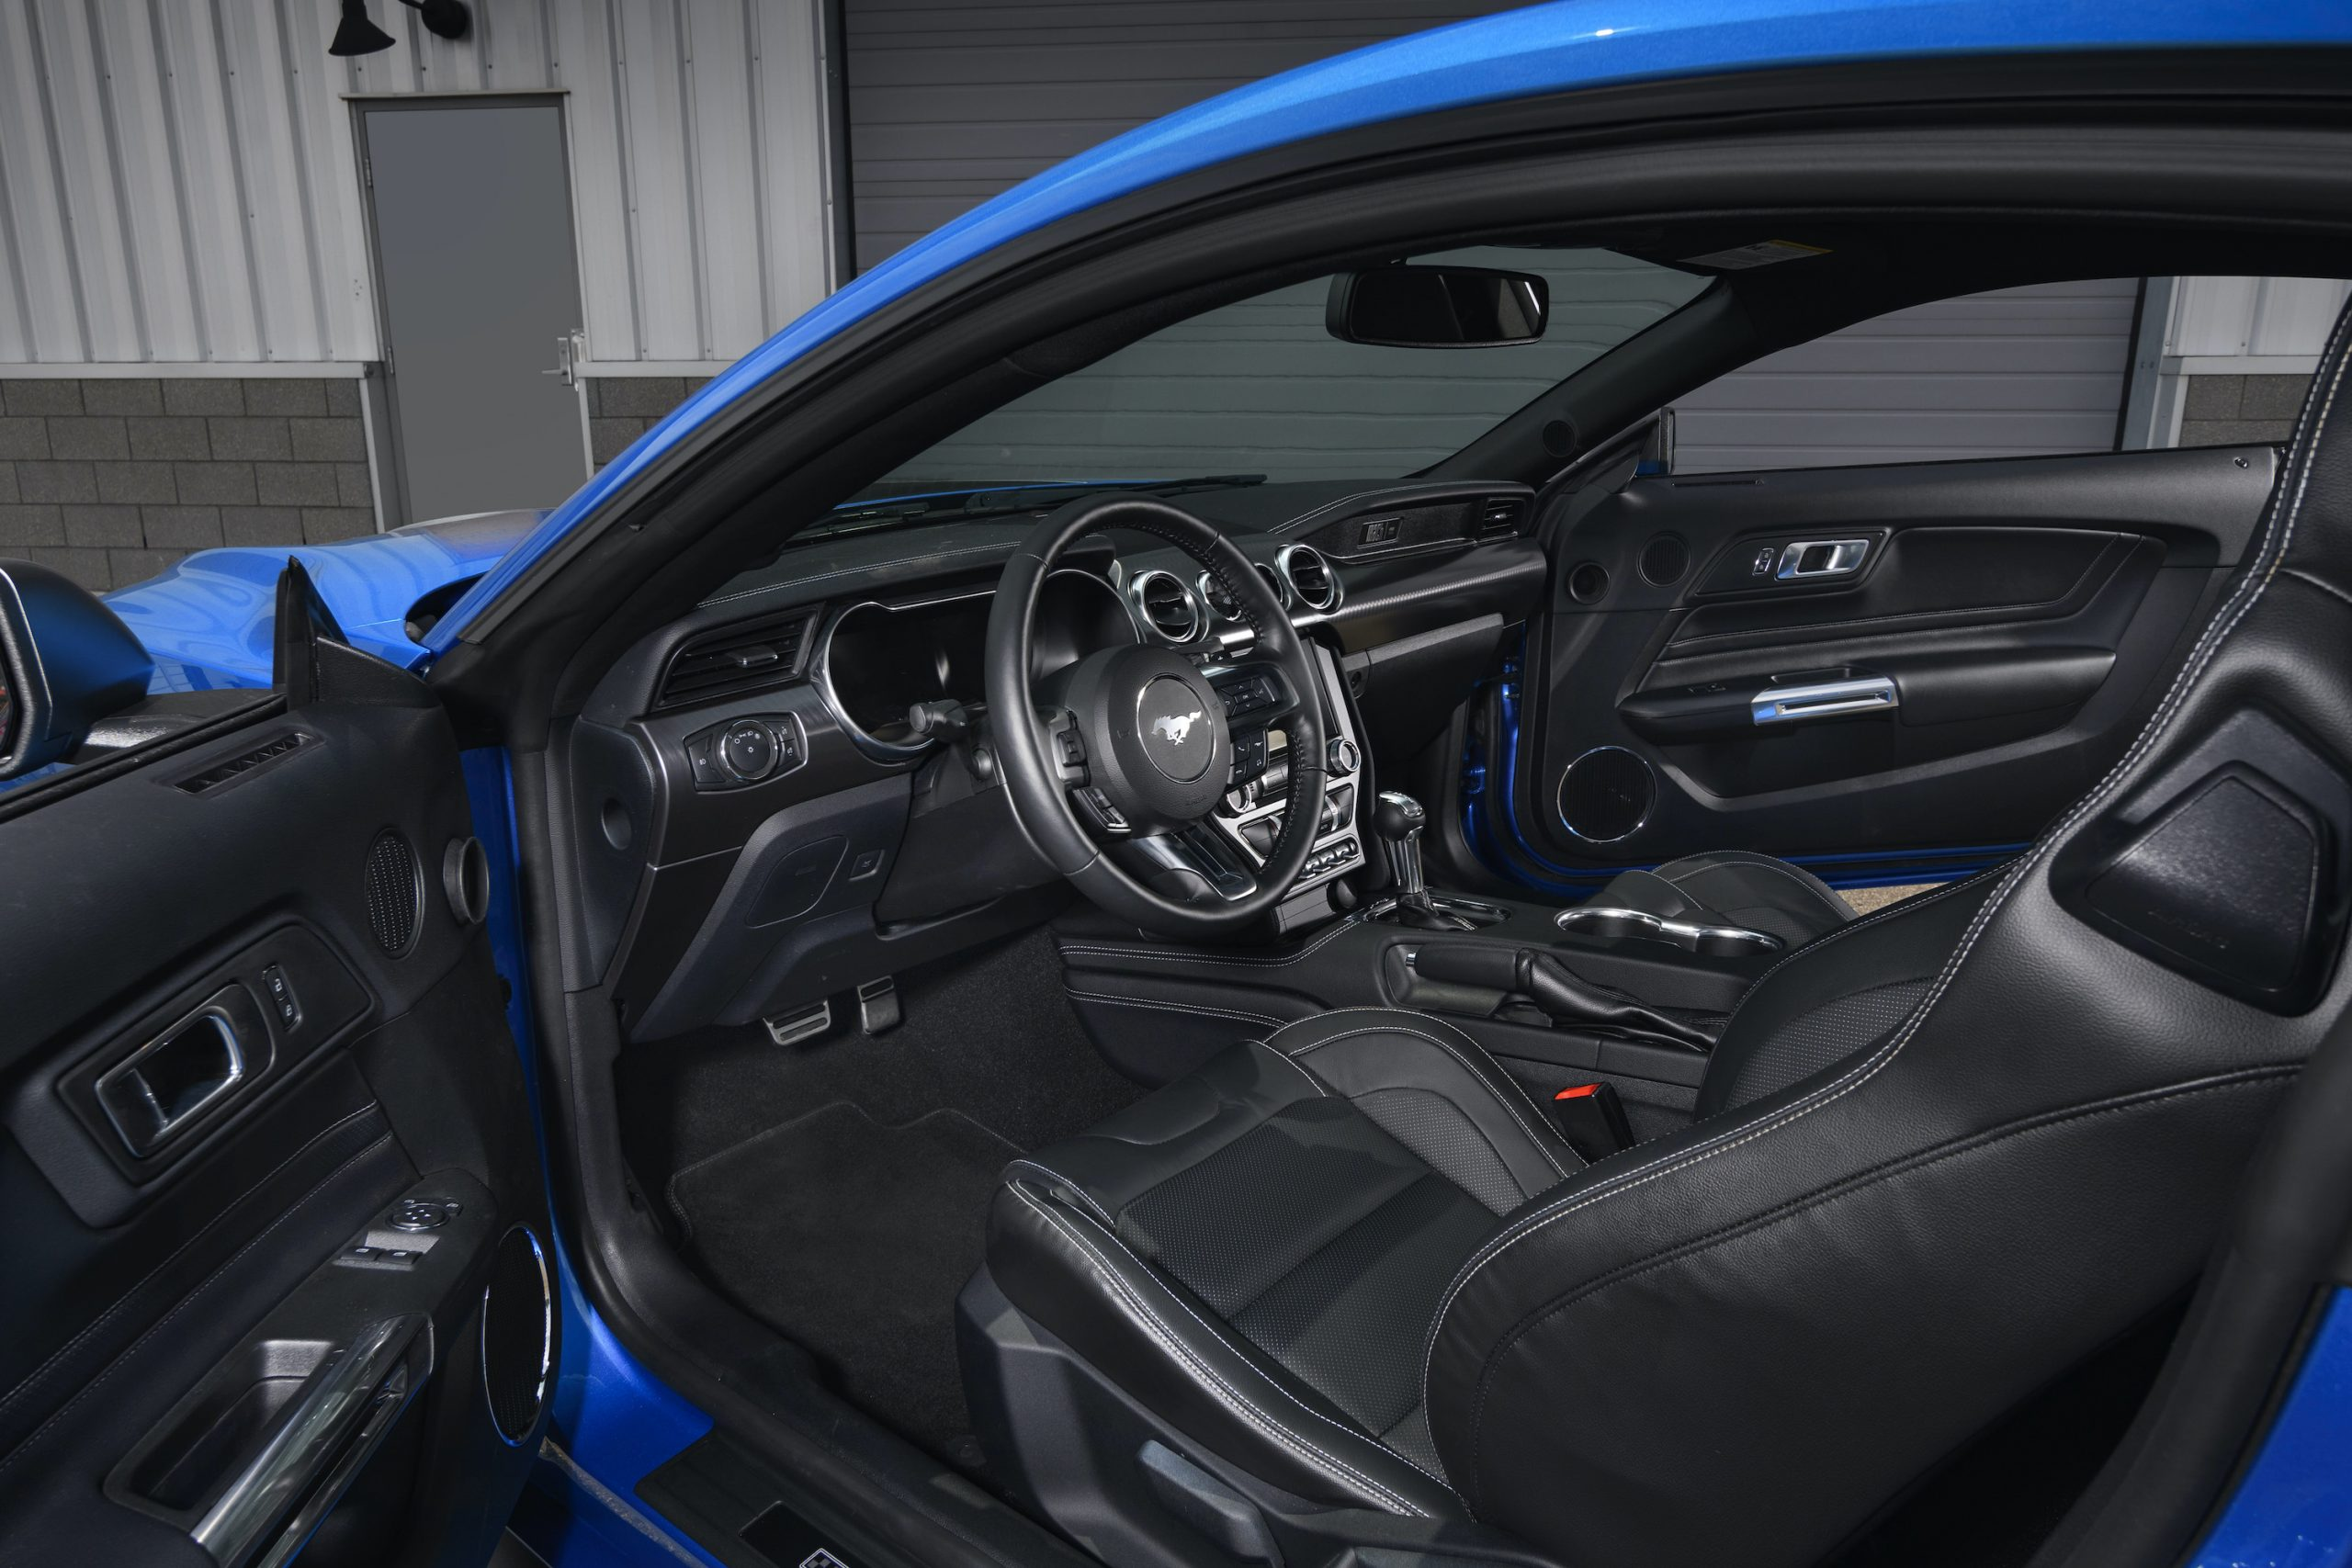 2021 Ford Mustang Mach 1 interior